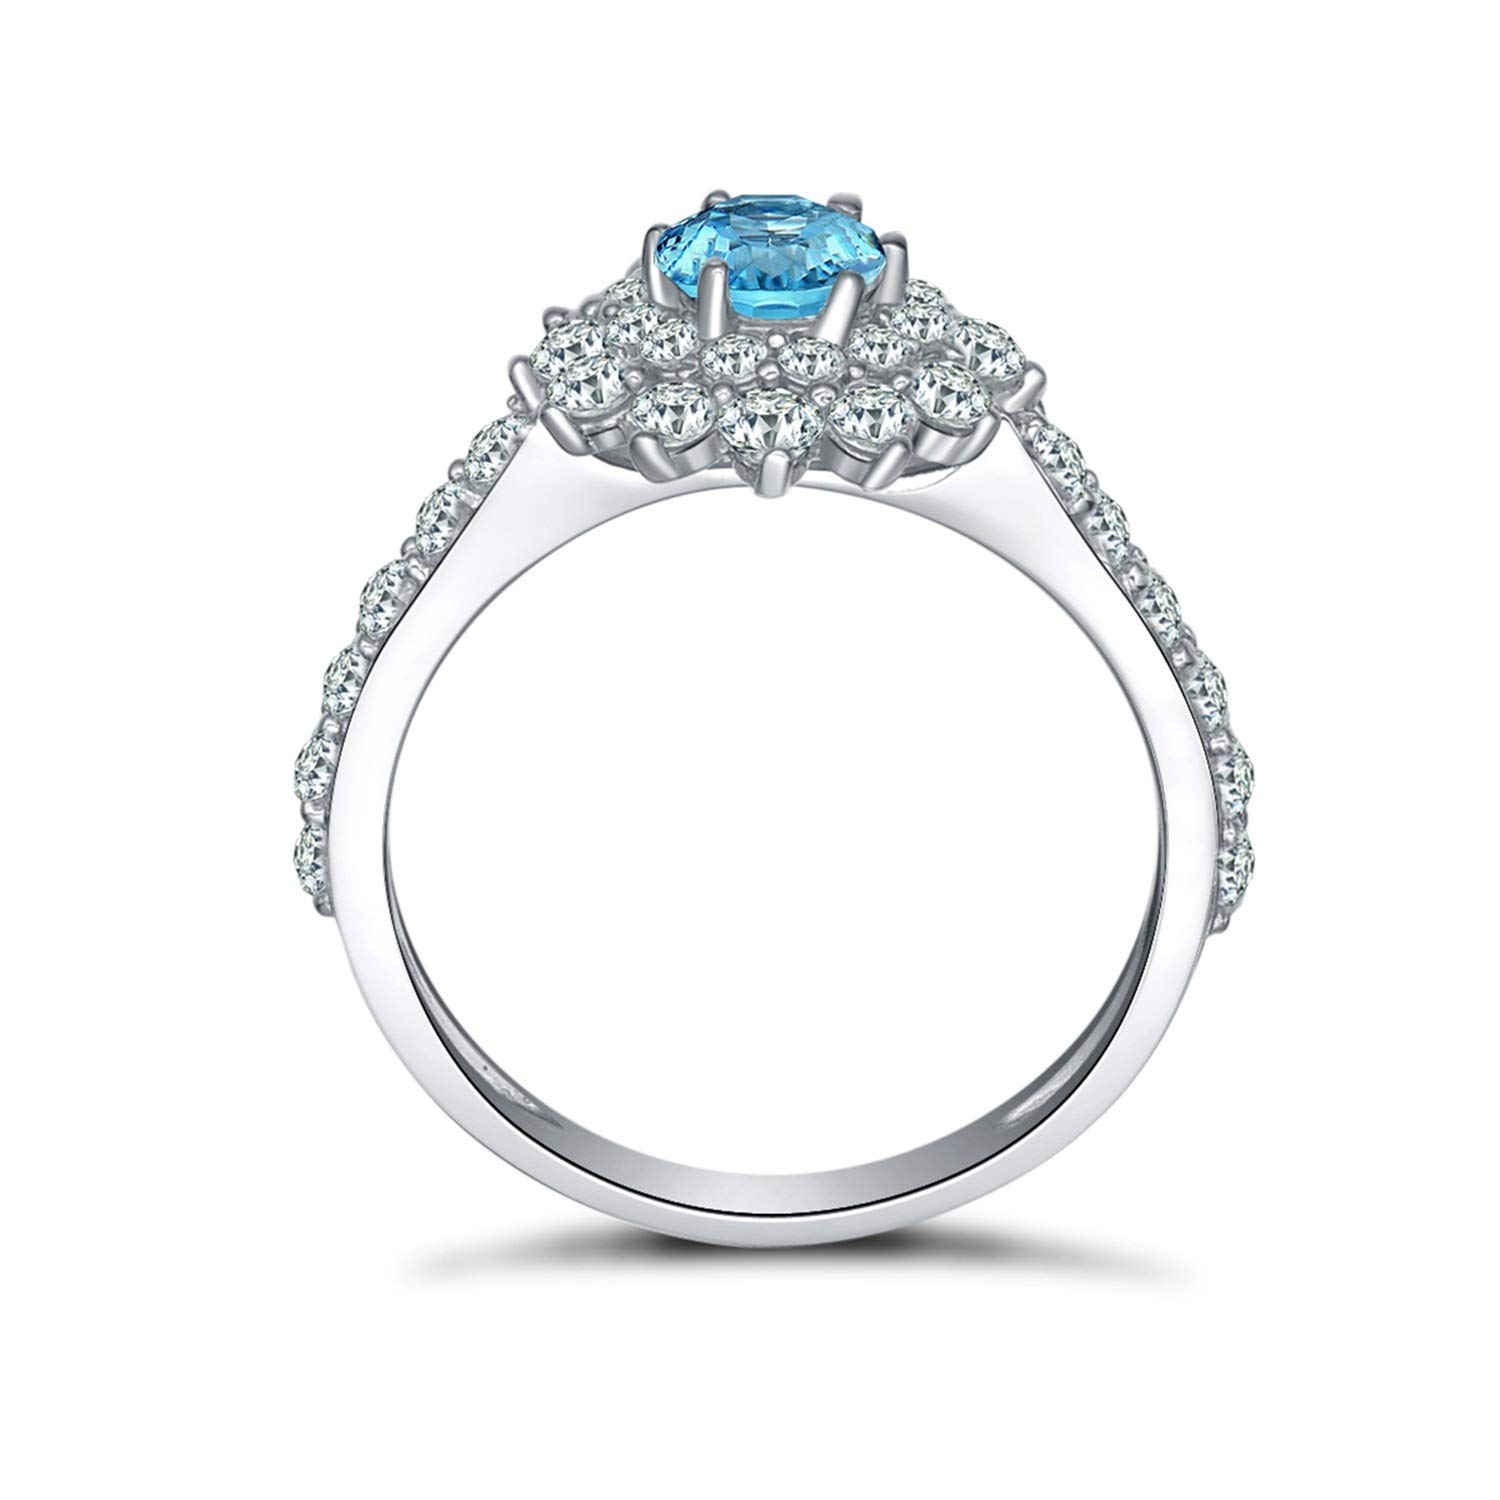 AMDXD Jewelry 925 Sterling Silver Bands for Women Blue Round Cut Topaz Round Ring